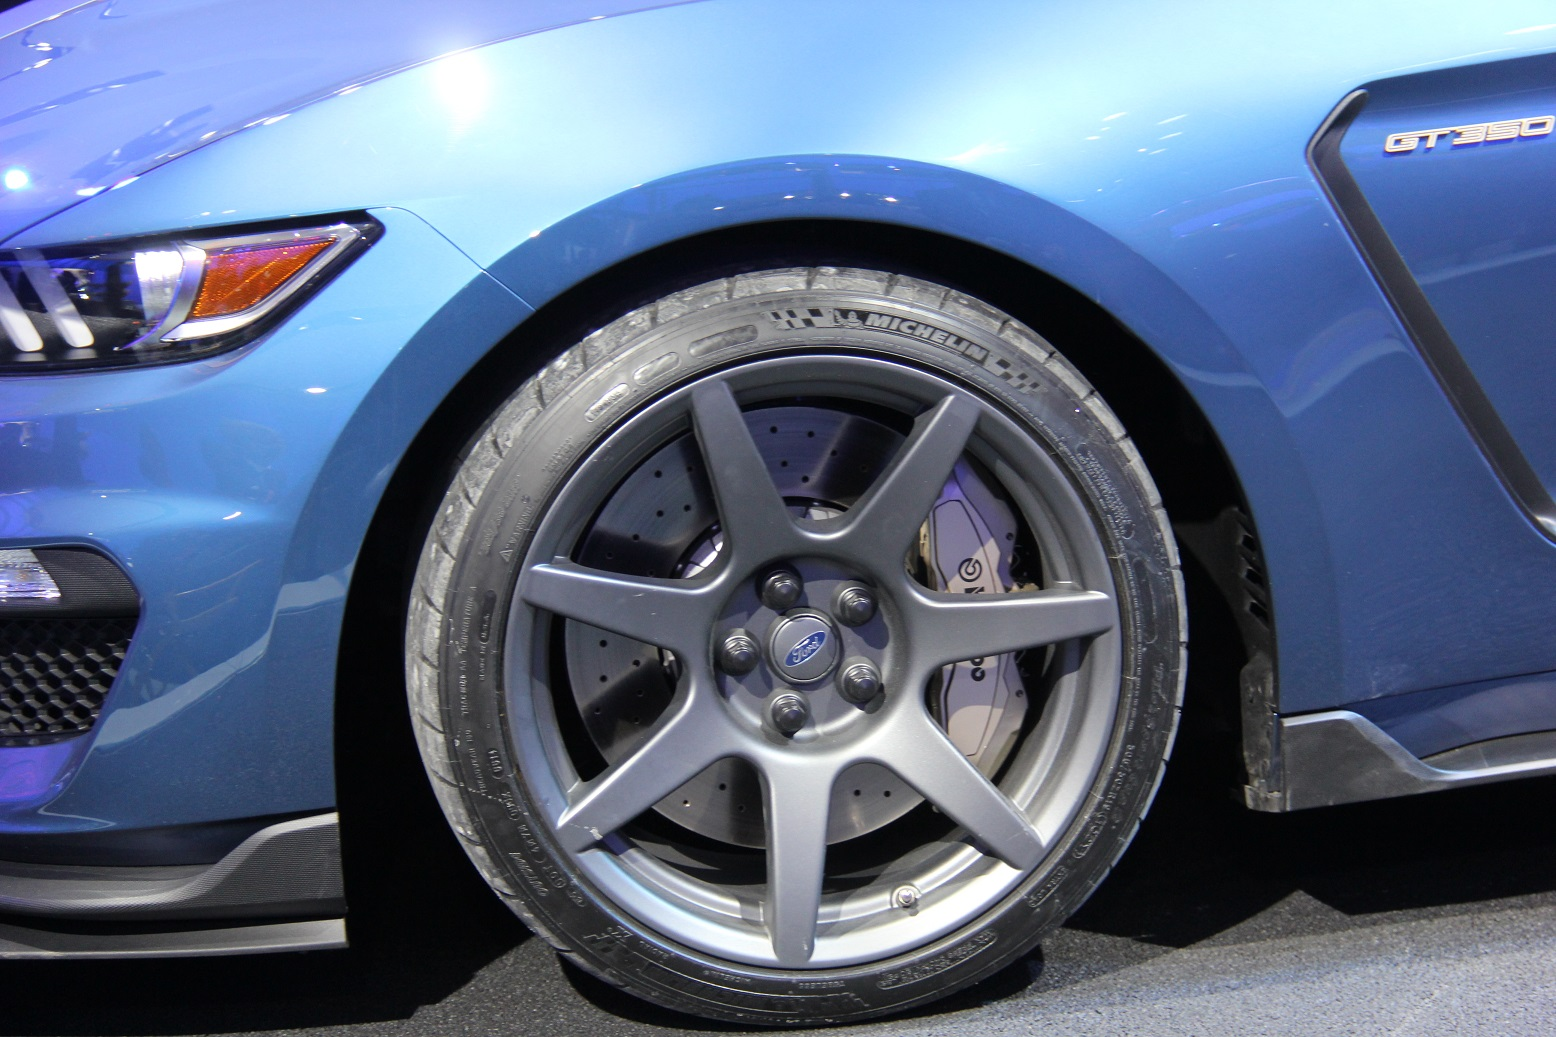 2016 Ford Mustang Shelby Gt350r Velg And Wheel (Photo 42 of 47)